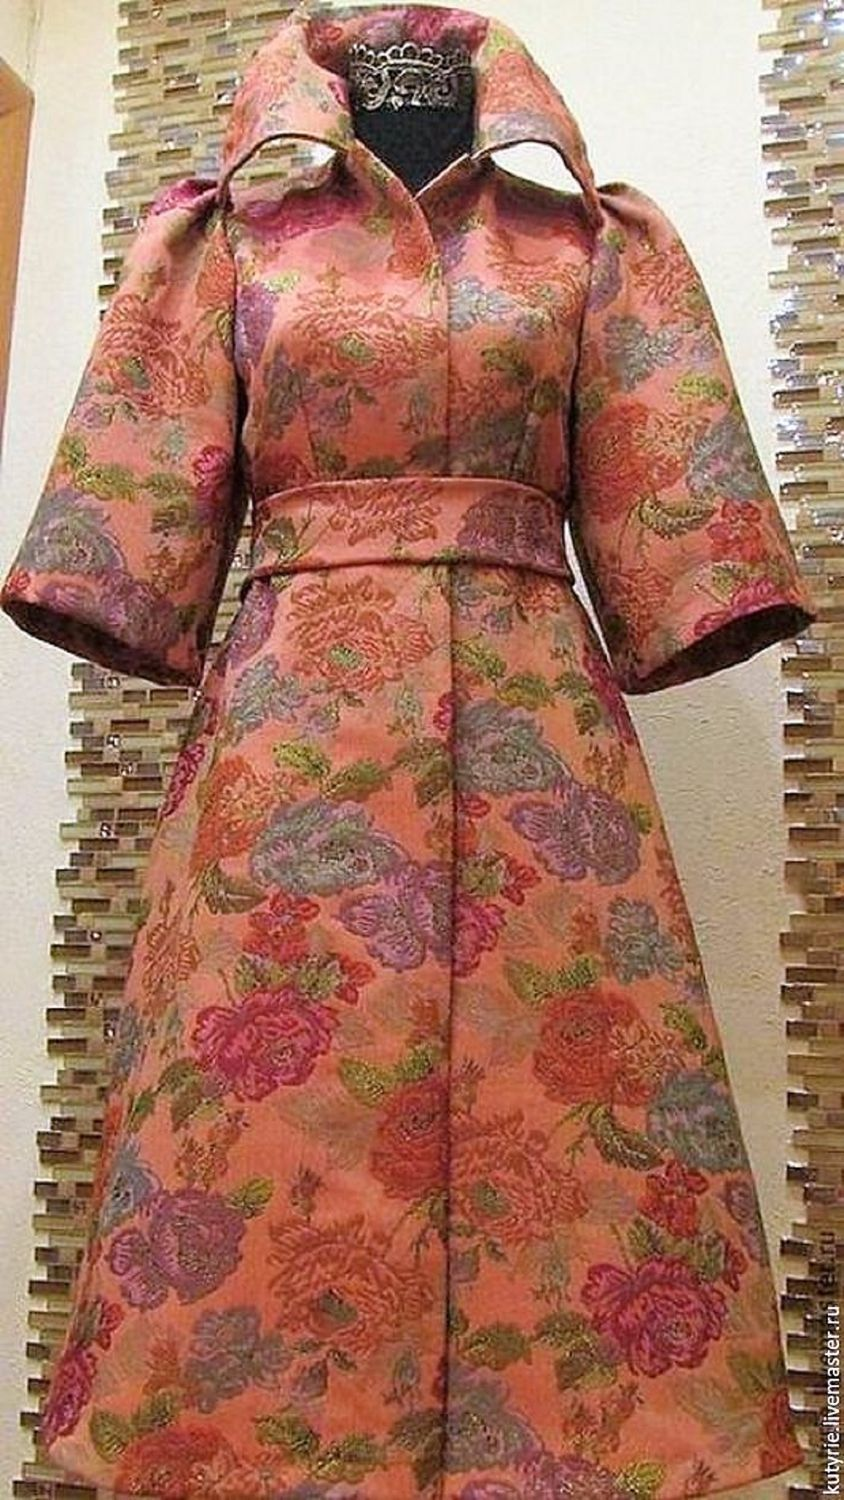 Author's jacquard coat 'Queen of roses', Coats, Moscow,  Фото №1